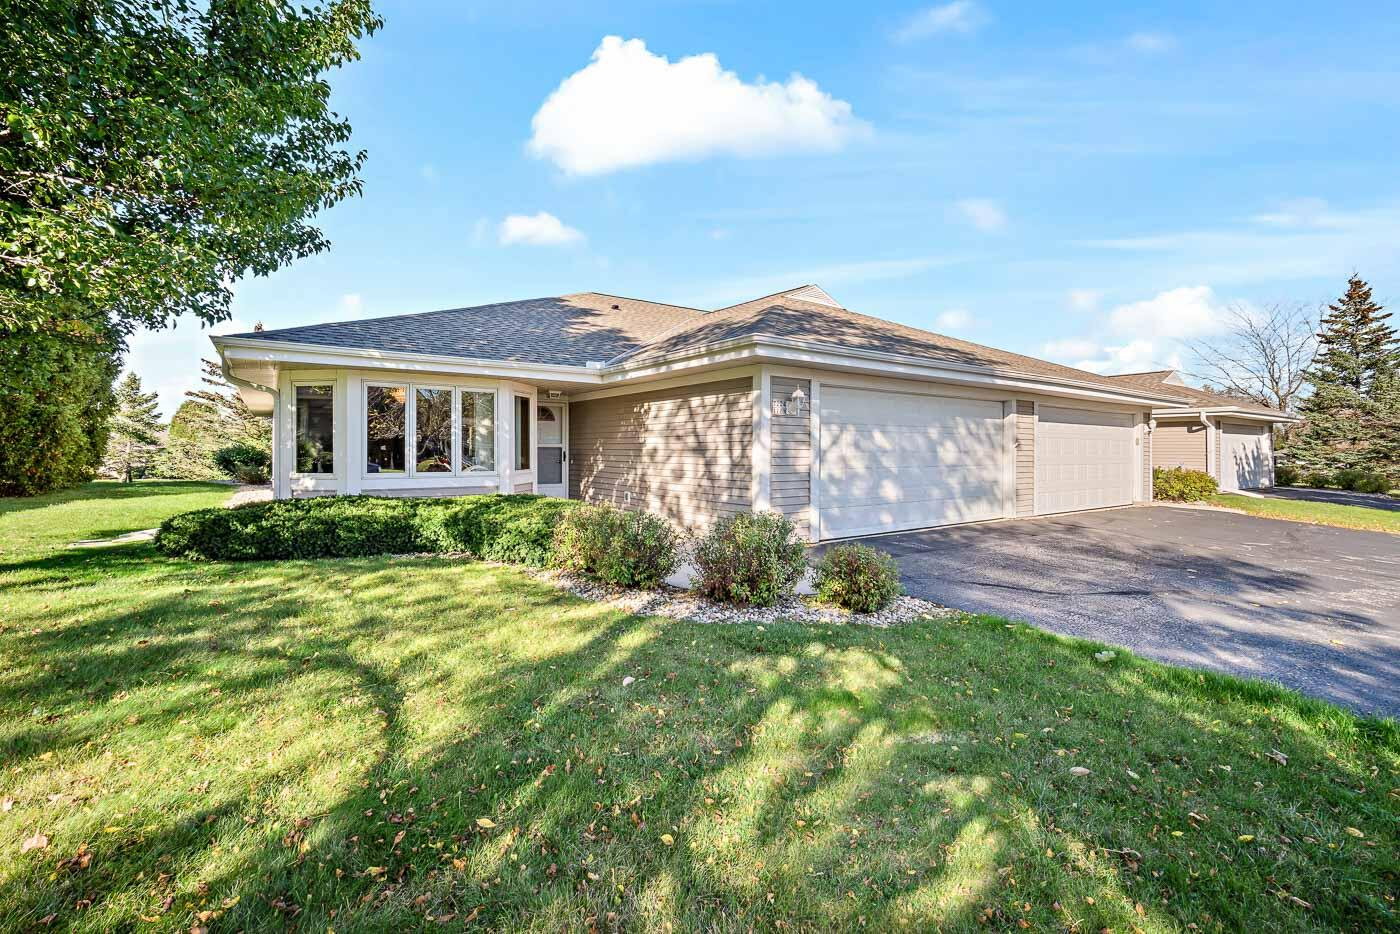 7224 Mequon Square Dr, Mequon, Wisconsin 53092, 2 Bedrooms Bedrooms, 5 Rooms Rooms,2 BathroomsBathrooms,Condominiums,For Sale,Mequon Square Dr,1,1768213